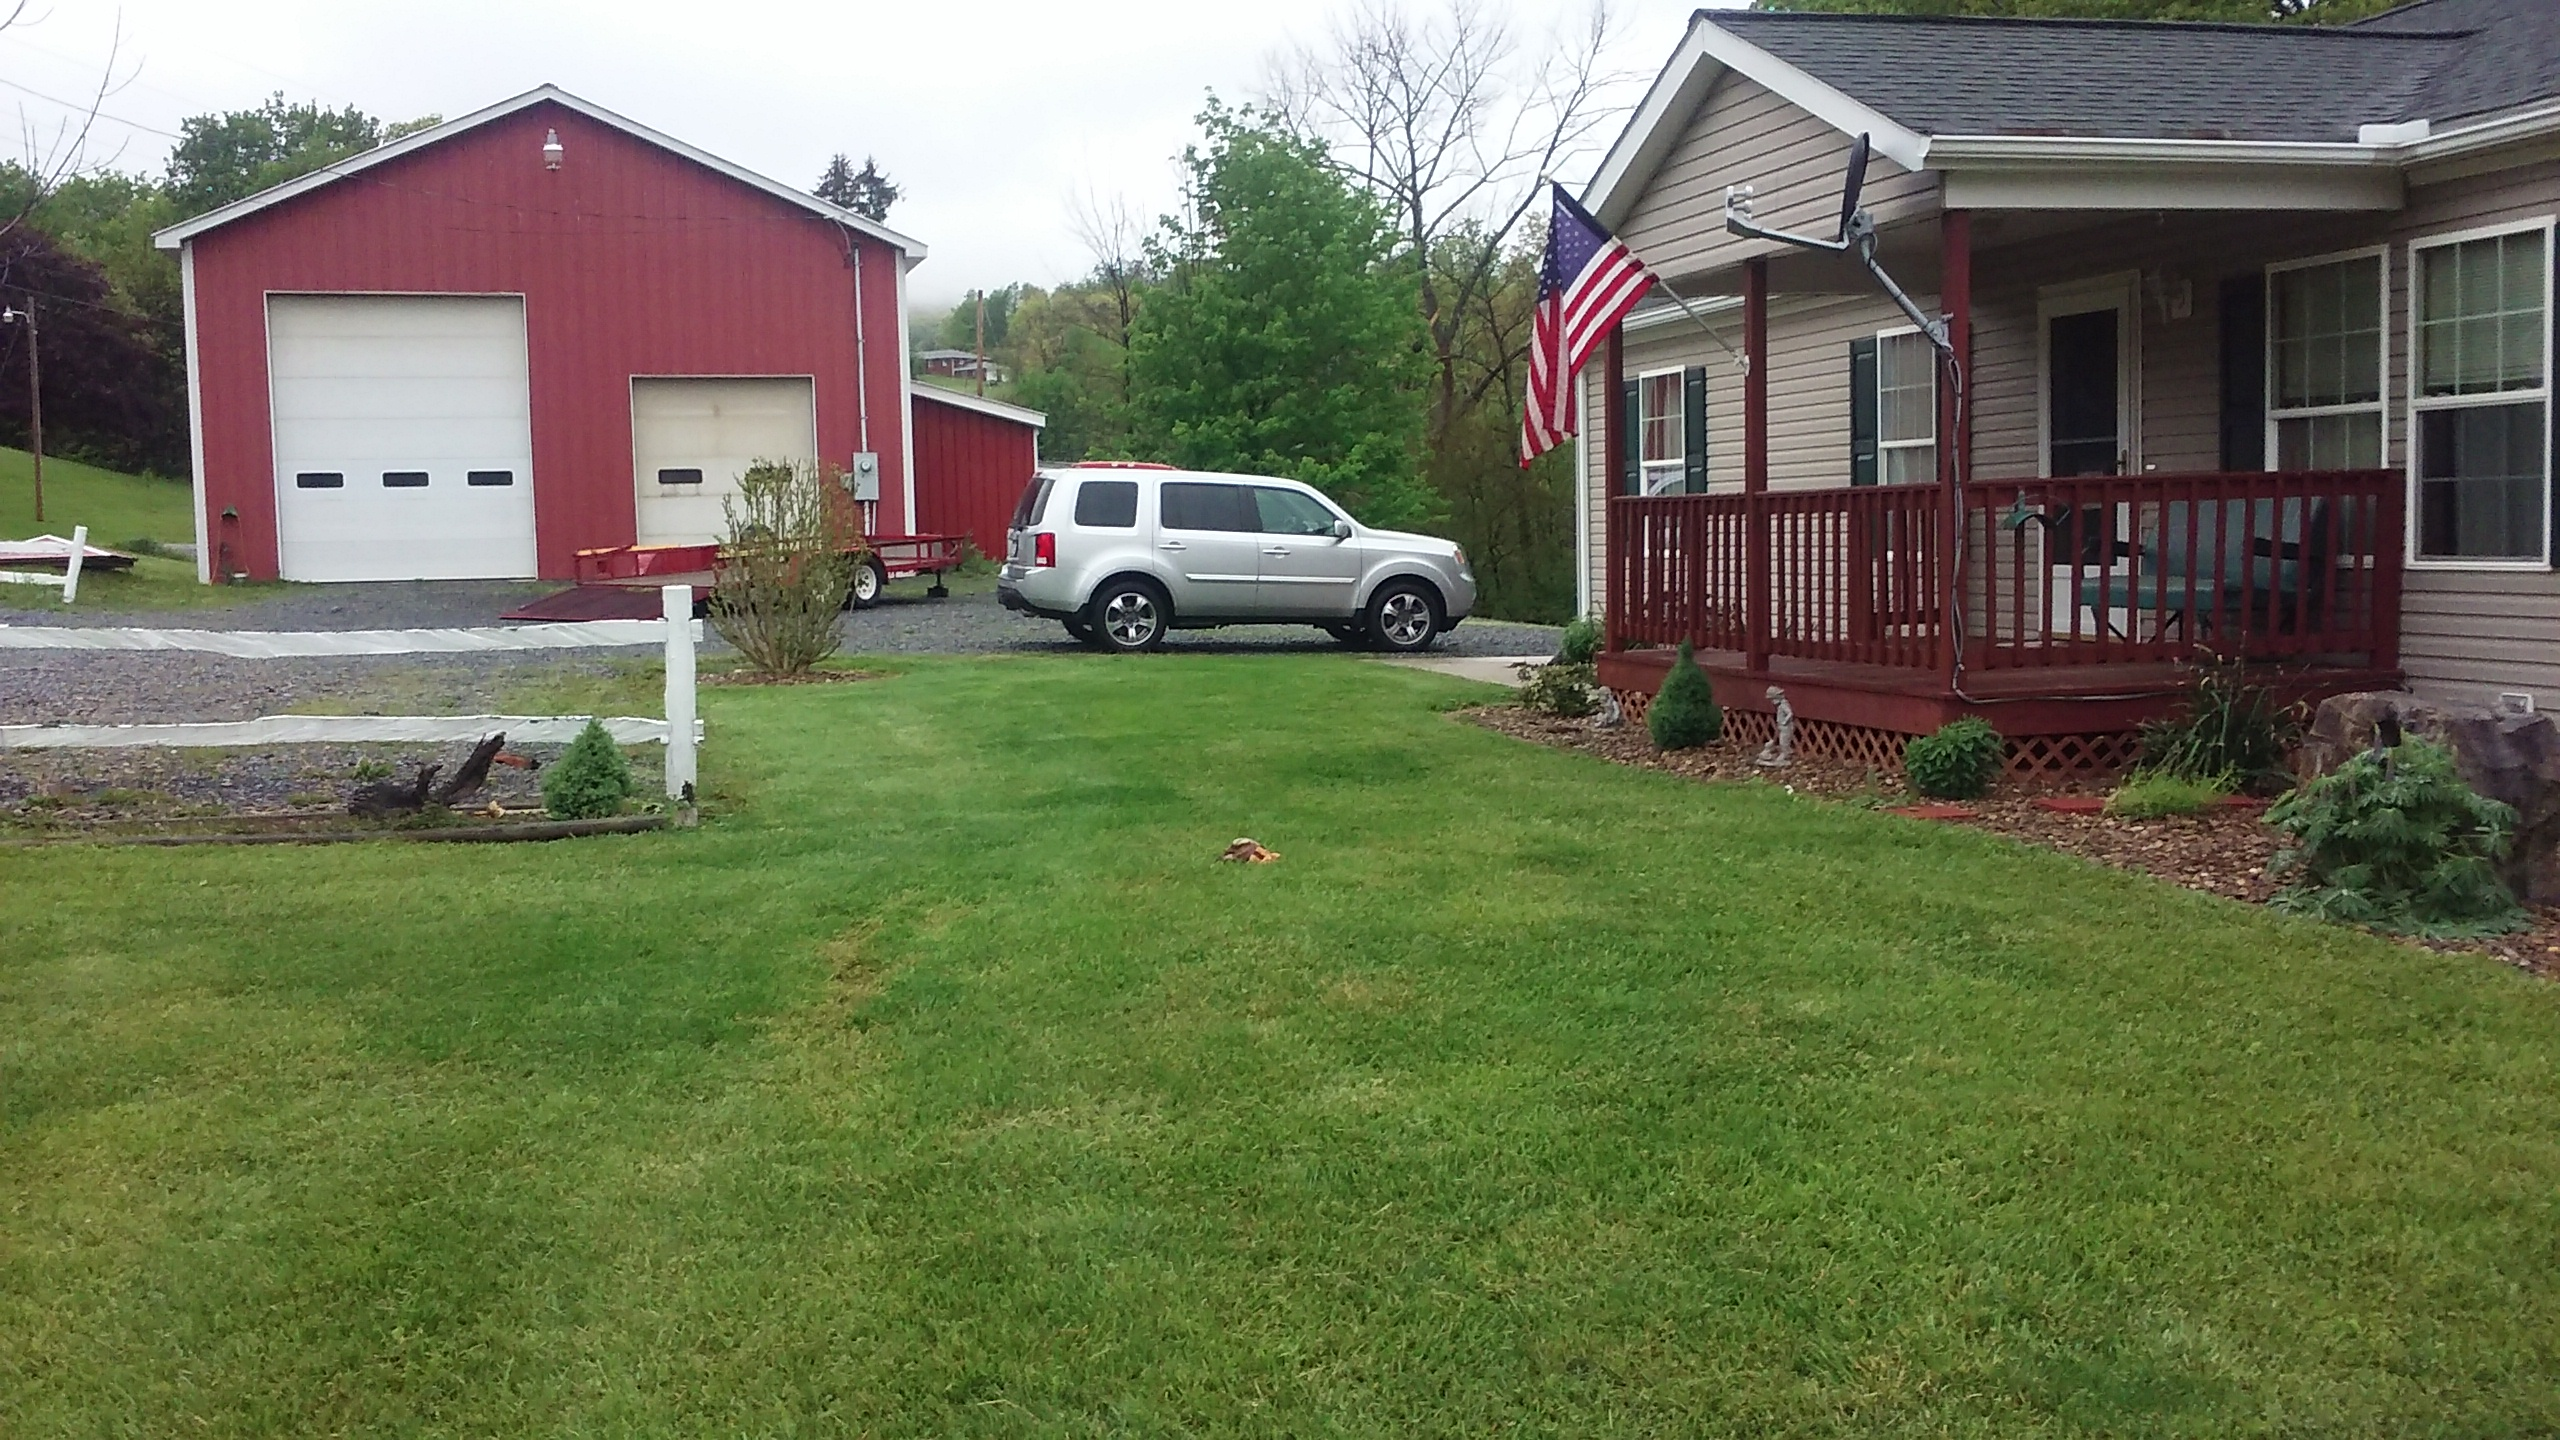 Click image for larger version.  Name:moms new honda pilot sitting athe house.jpg Views:15 Size:1.52 MB ID:366002